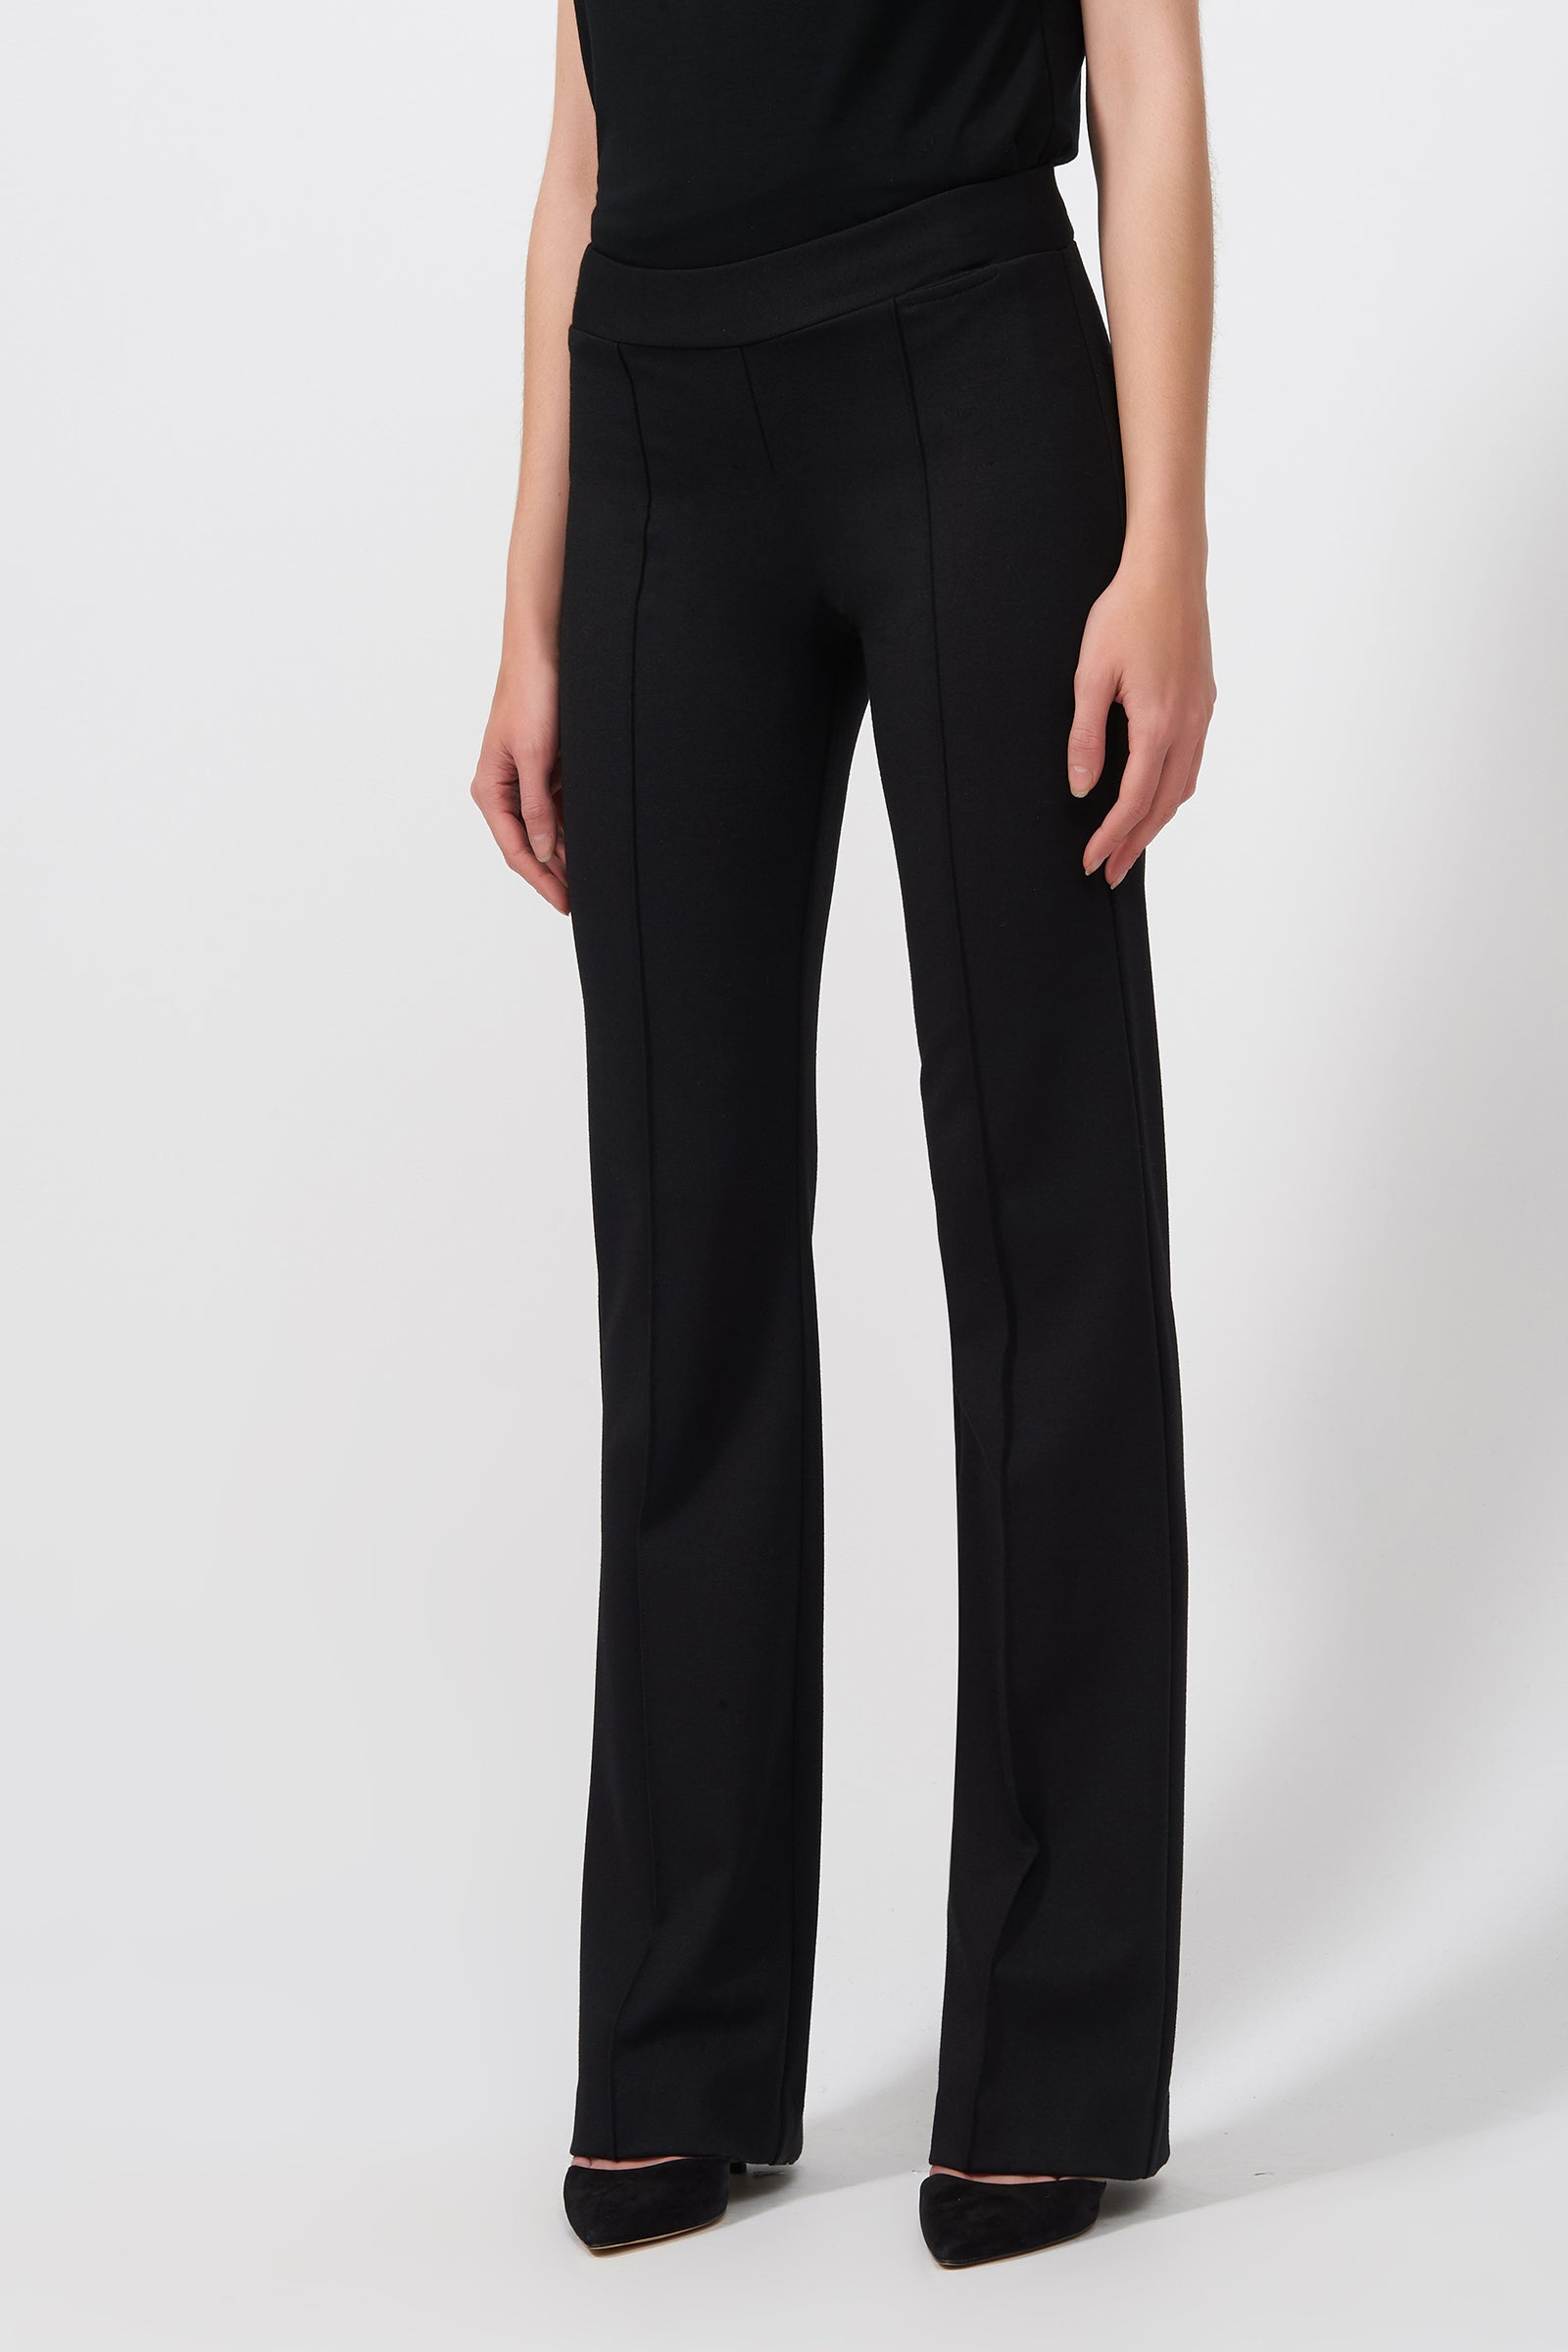 Kal Rieman Pintuck Ponte Column Pant in Black on Model Side View